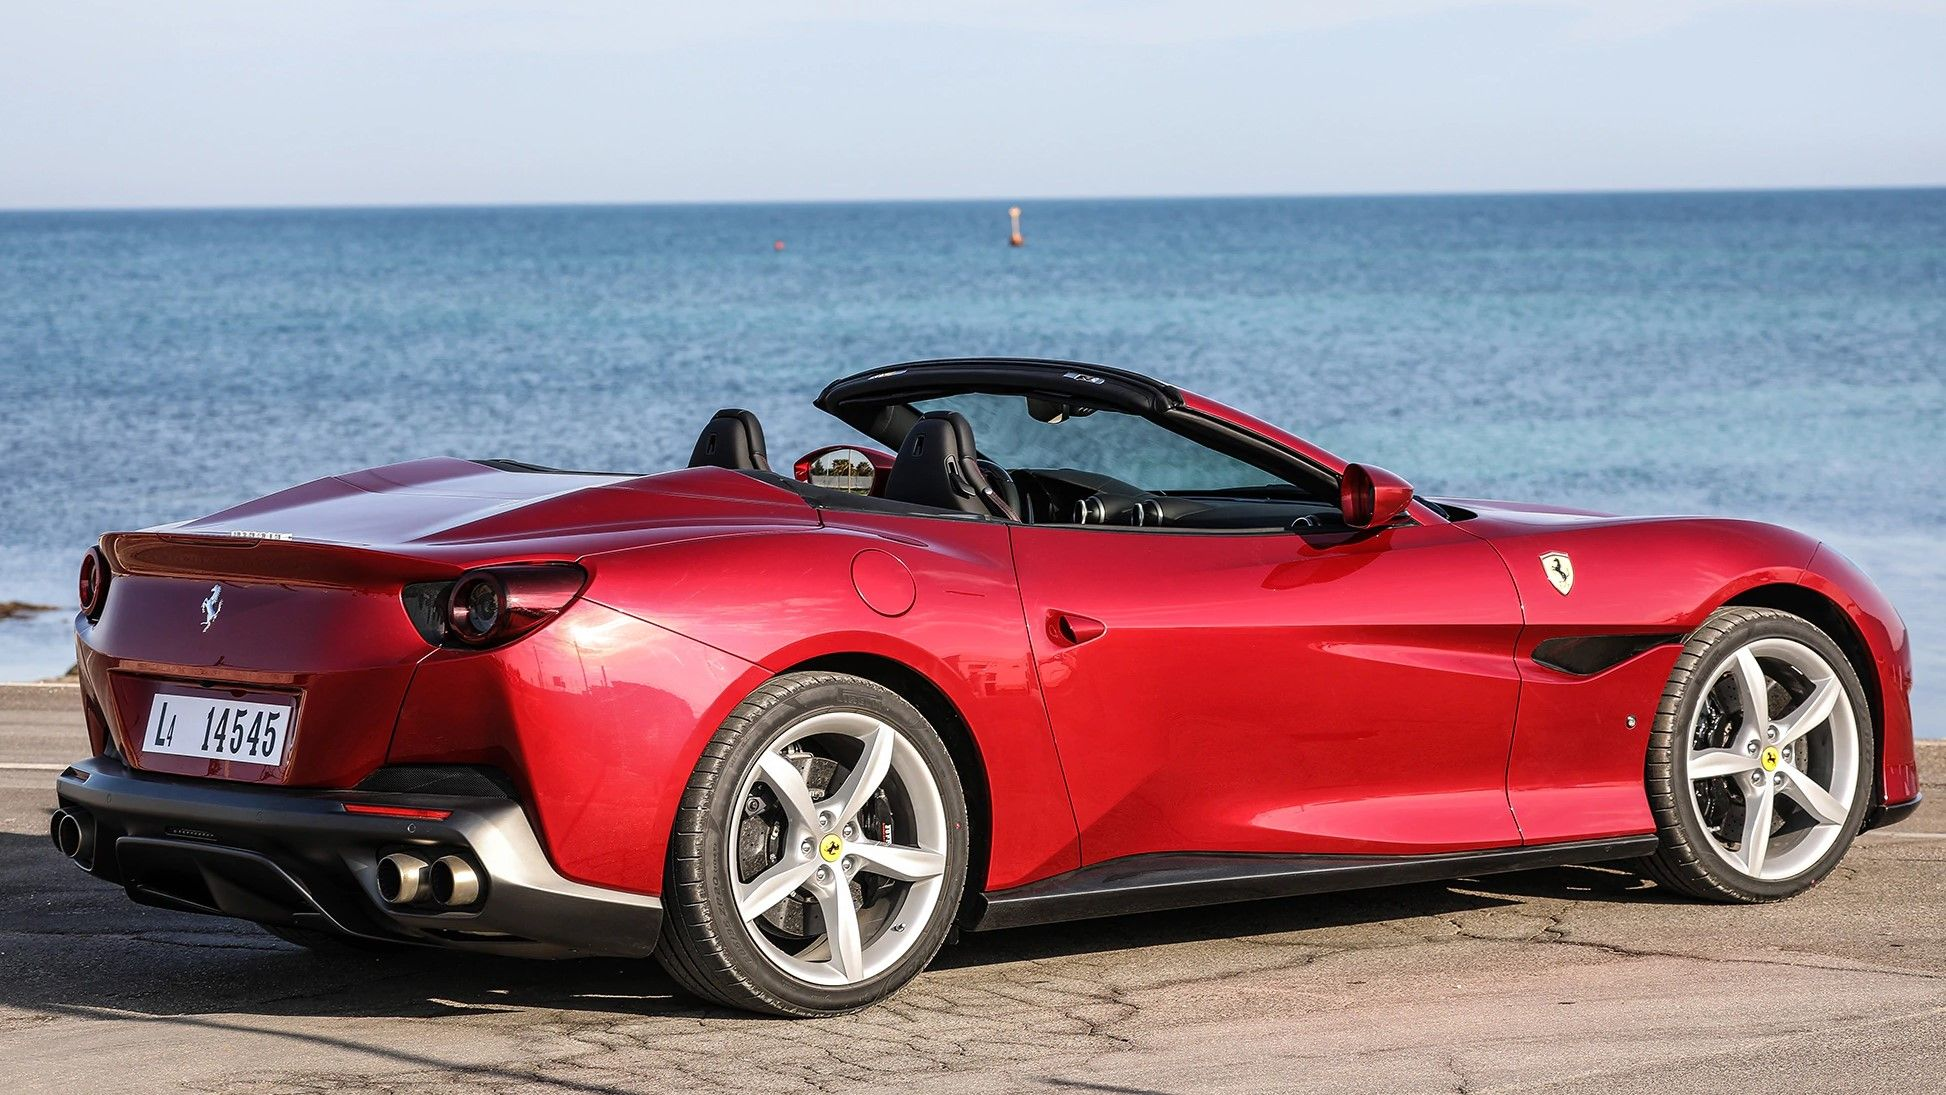 2019 Ferrari Portofino Rear Three-quarter View